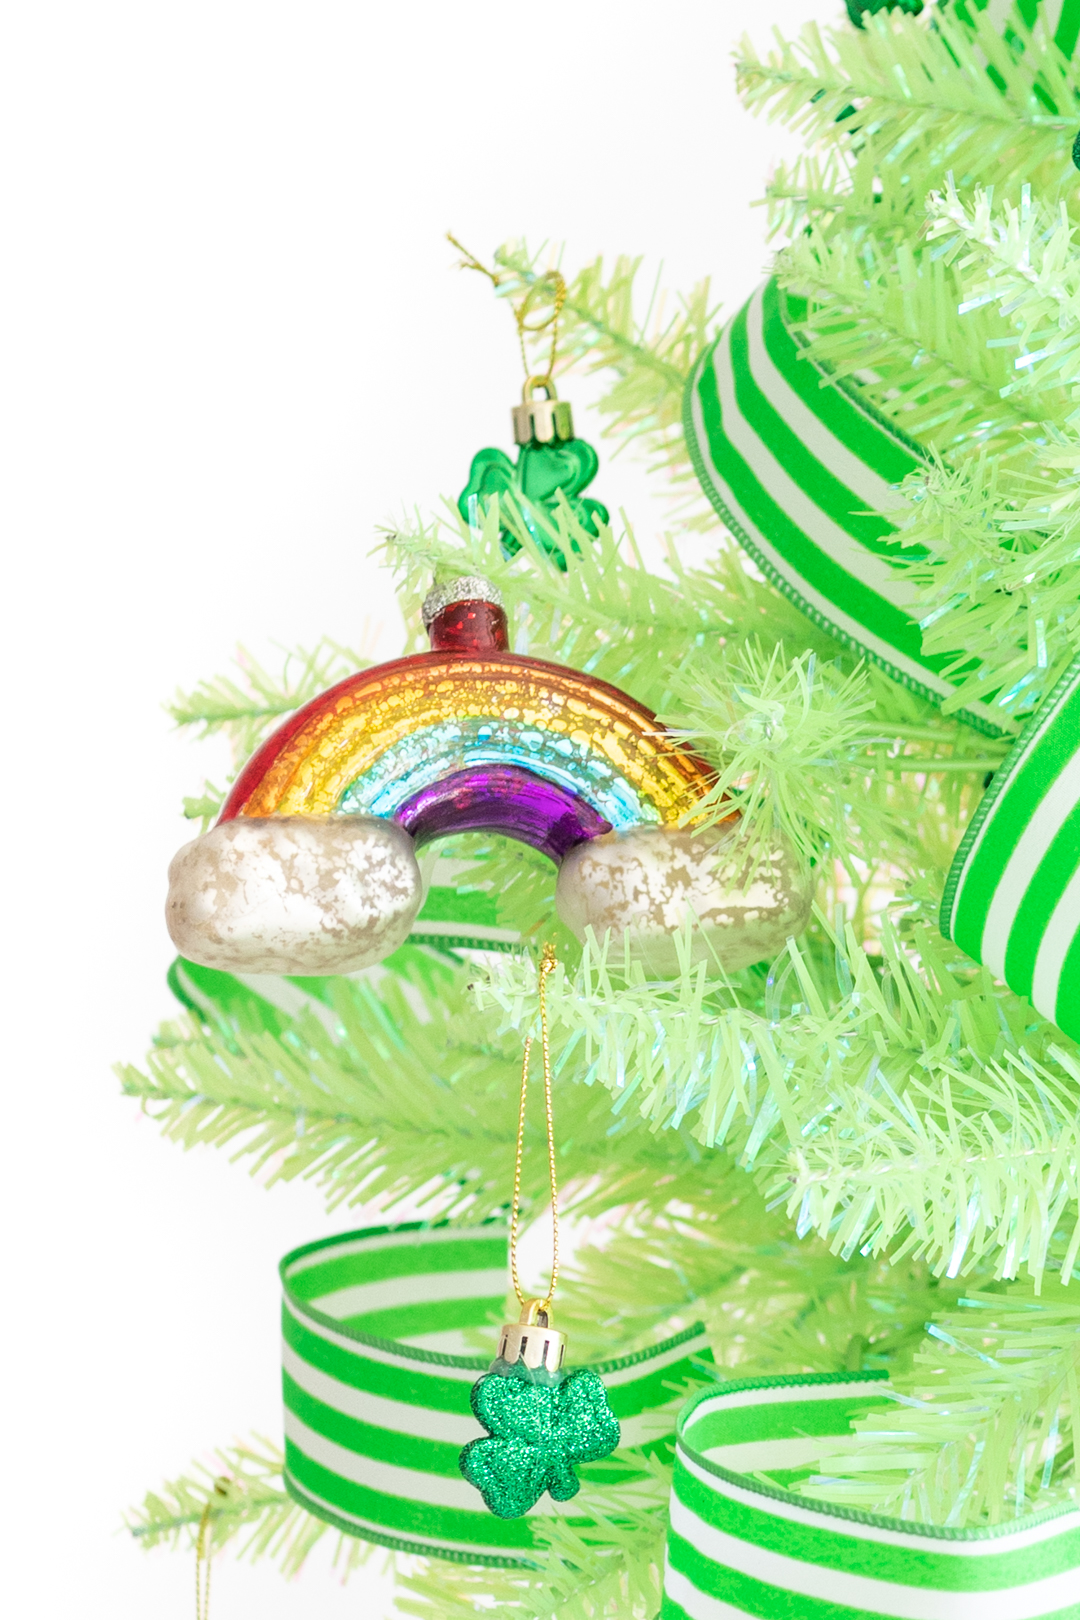 st. patrick's day ornaments. Glass rainbow ornament and green and white striped ribbon used to decorate for St. Patrick's Day.